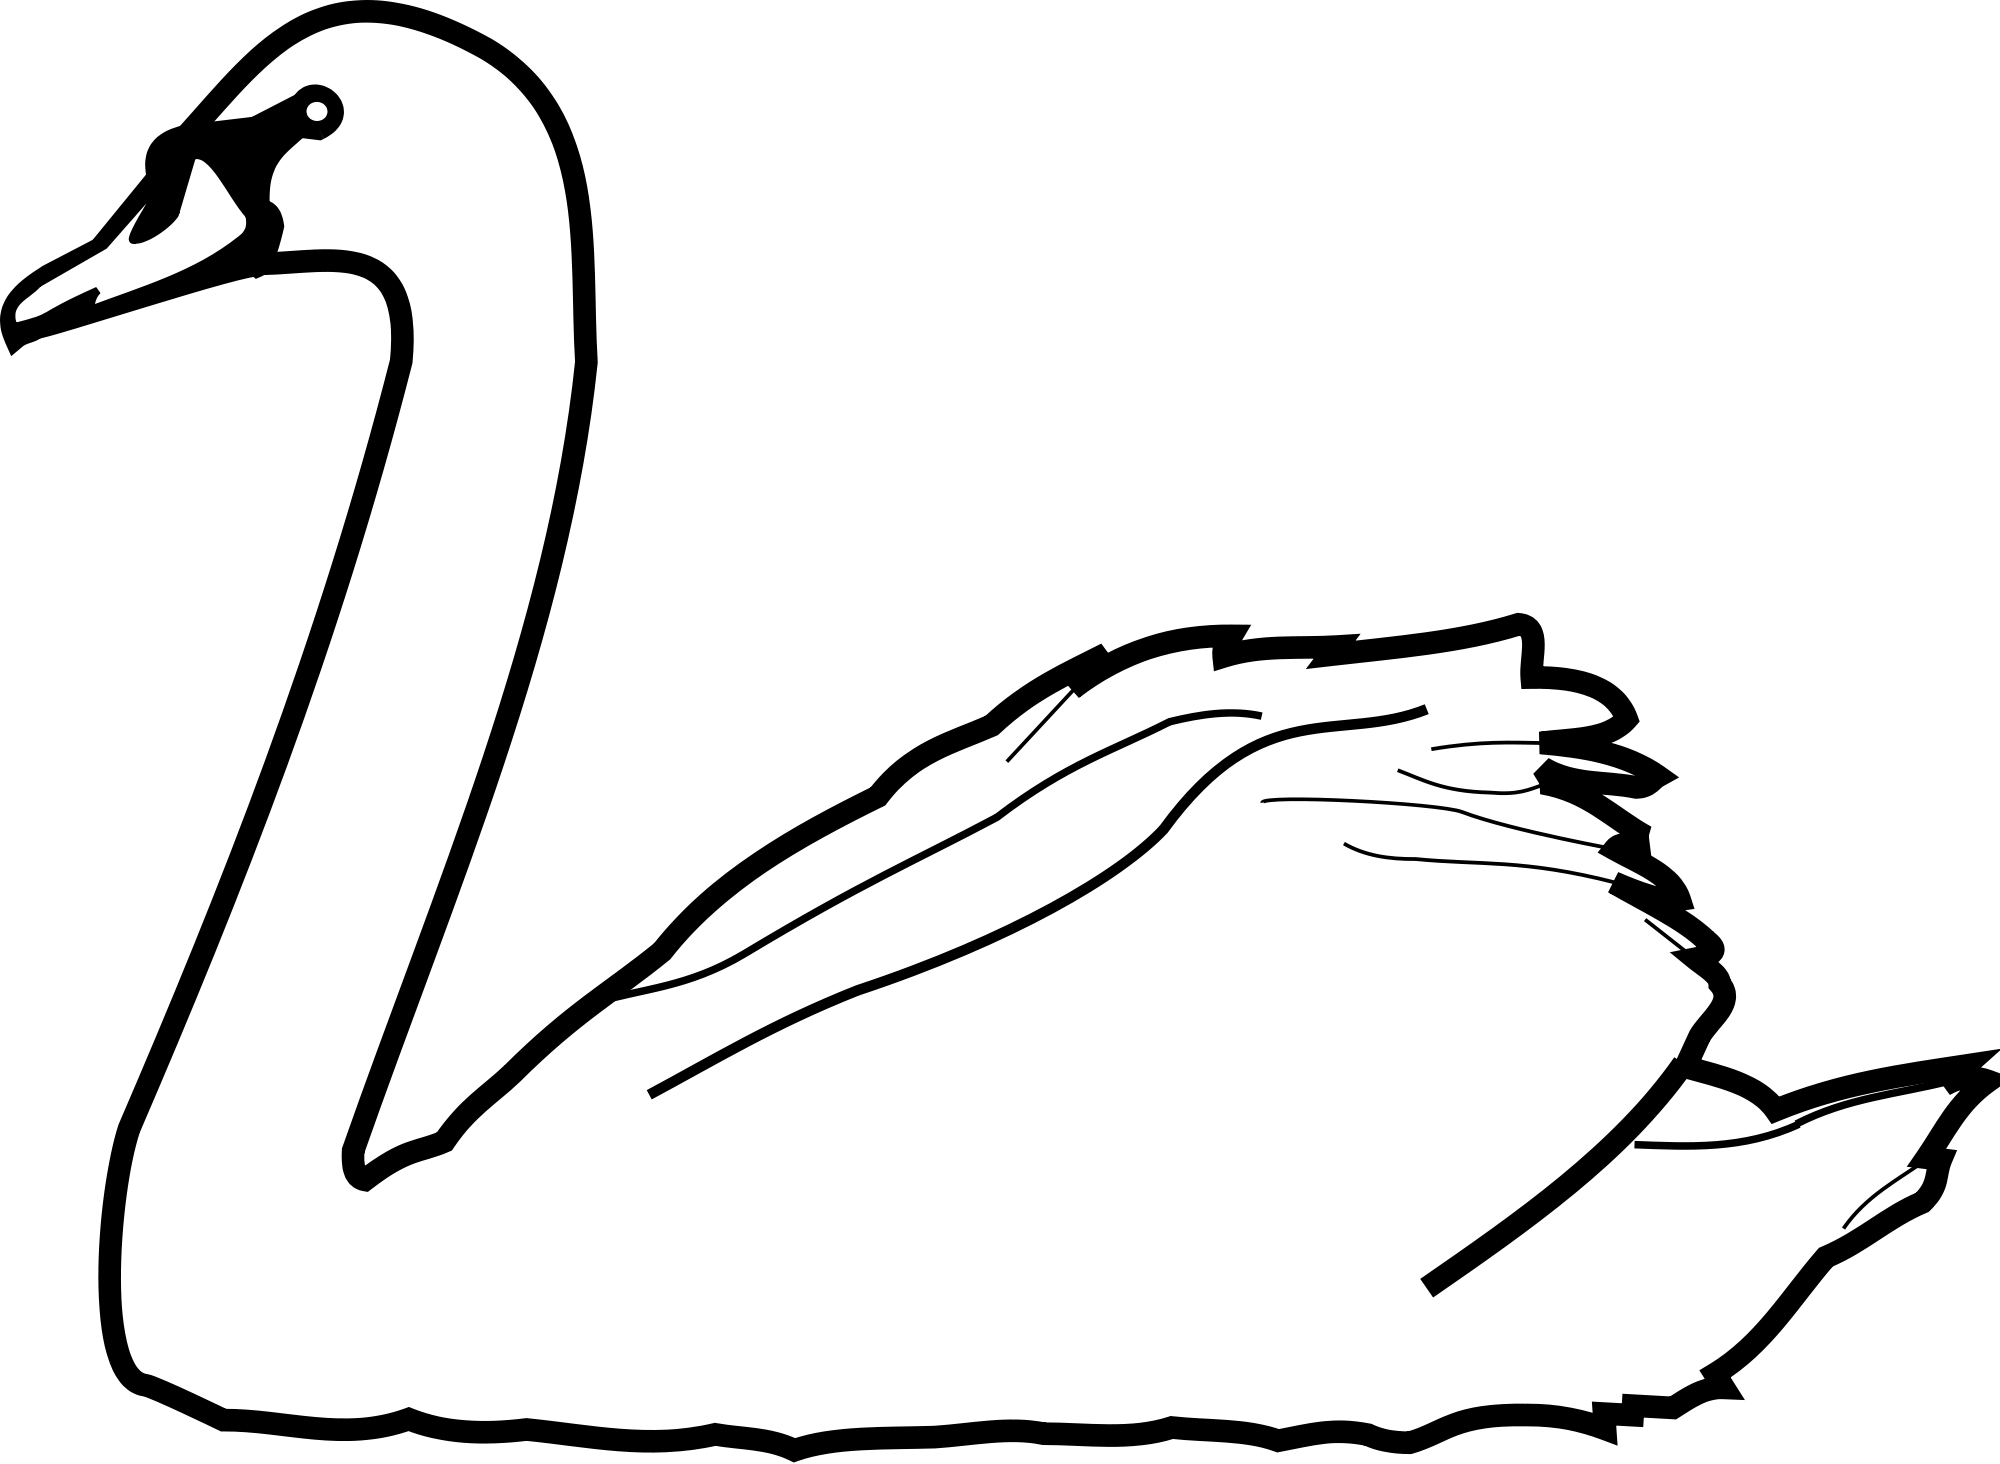 Two swans making a heart clipart vector free stock Swans Drawing at GetDrawings.com | Free for personal use Swans ... vector free stock